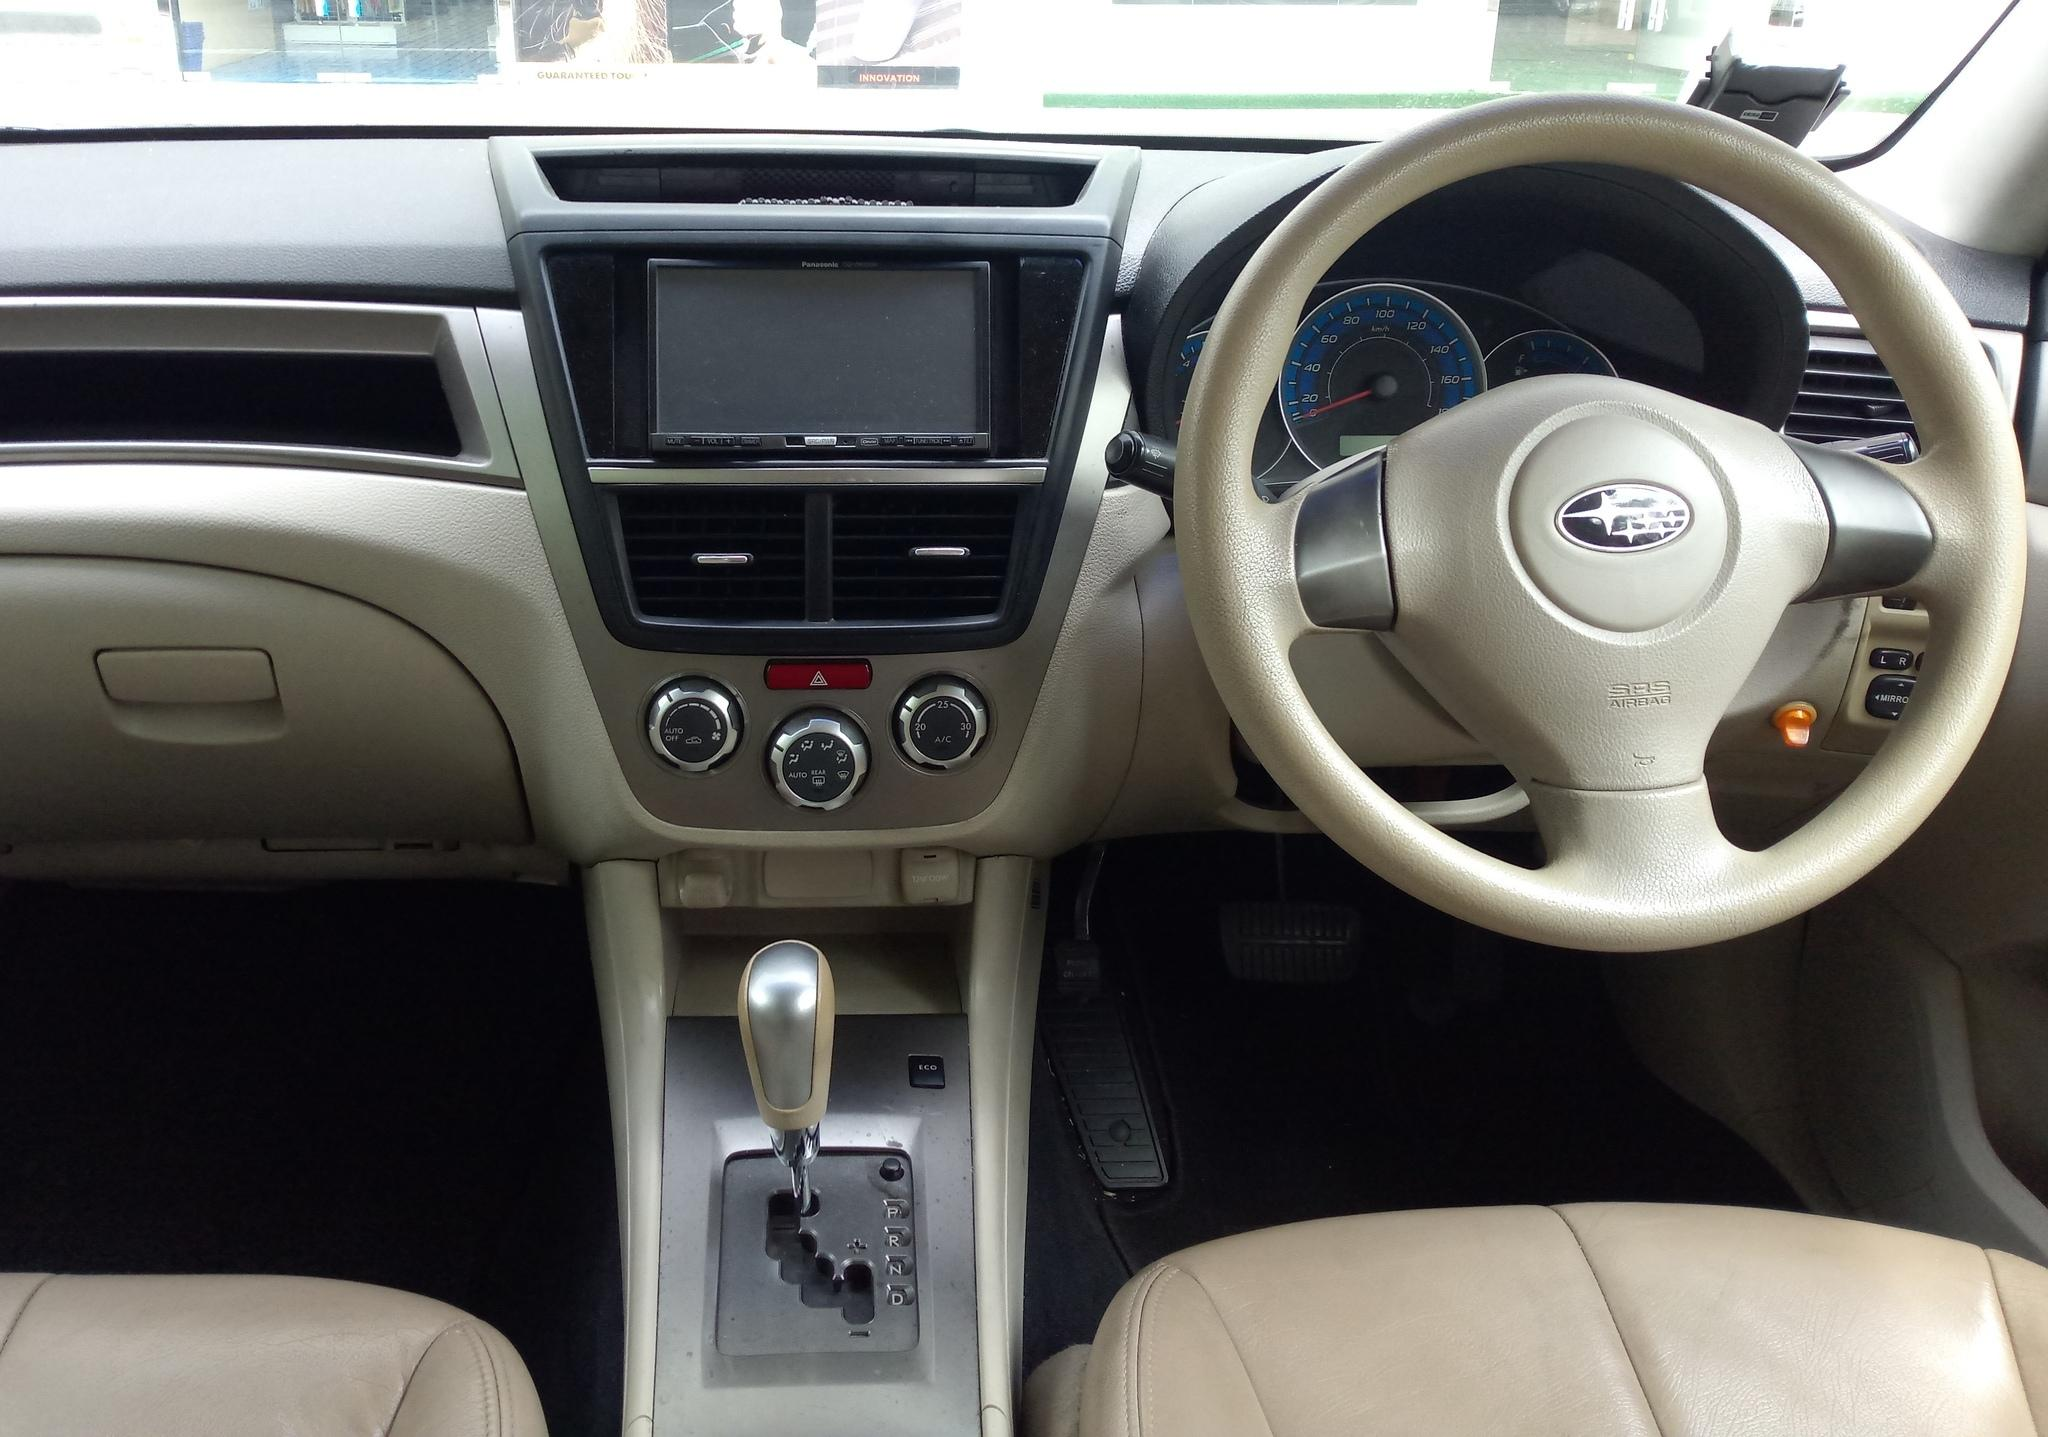 Subaru Exiga 2.0A Luxury MPV for Personal/PHV Usage